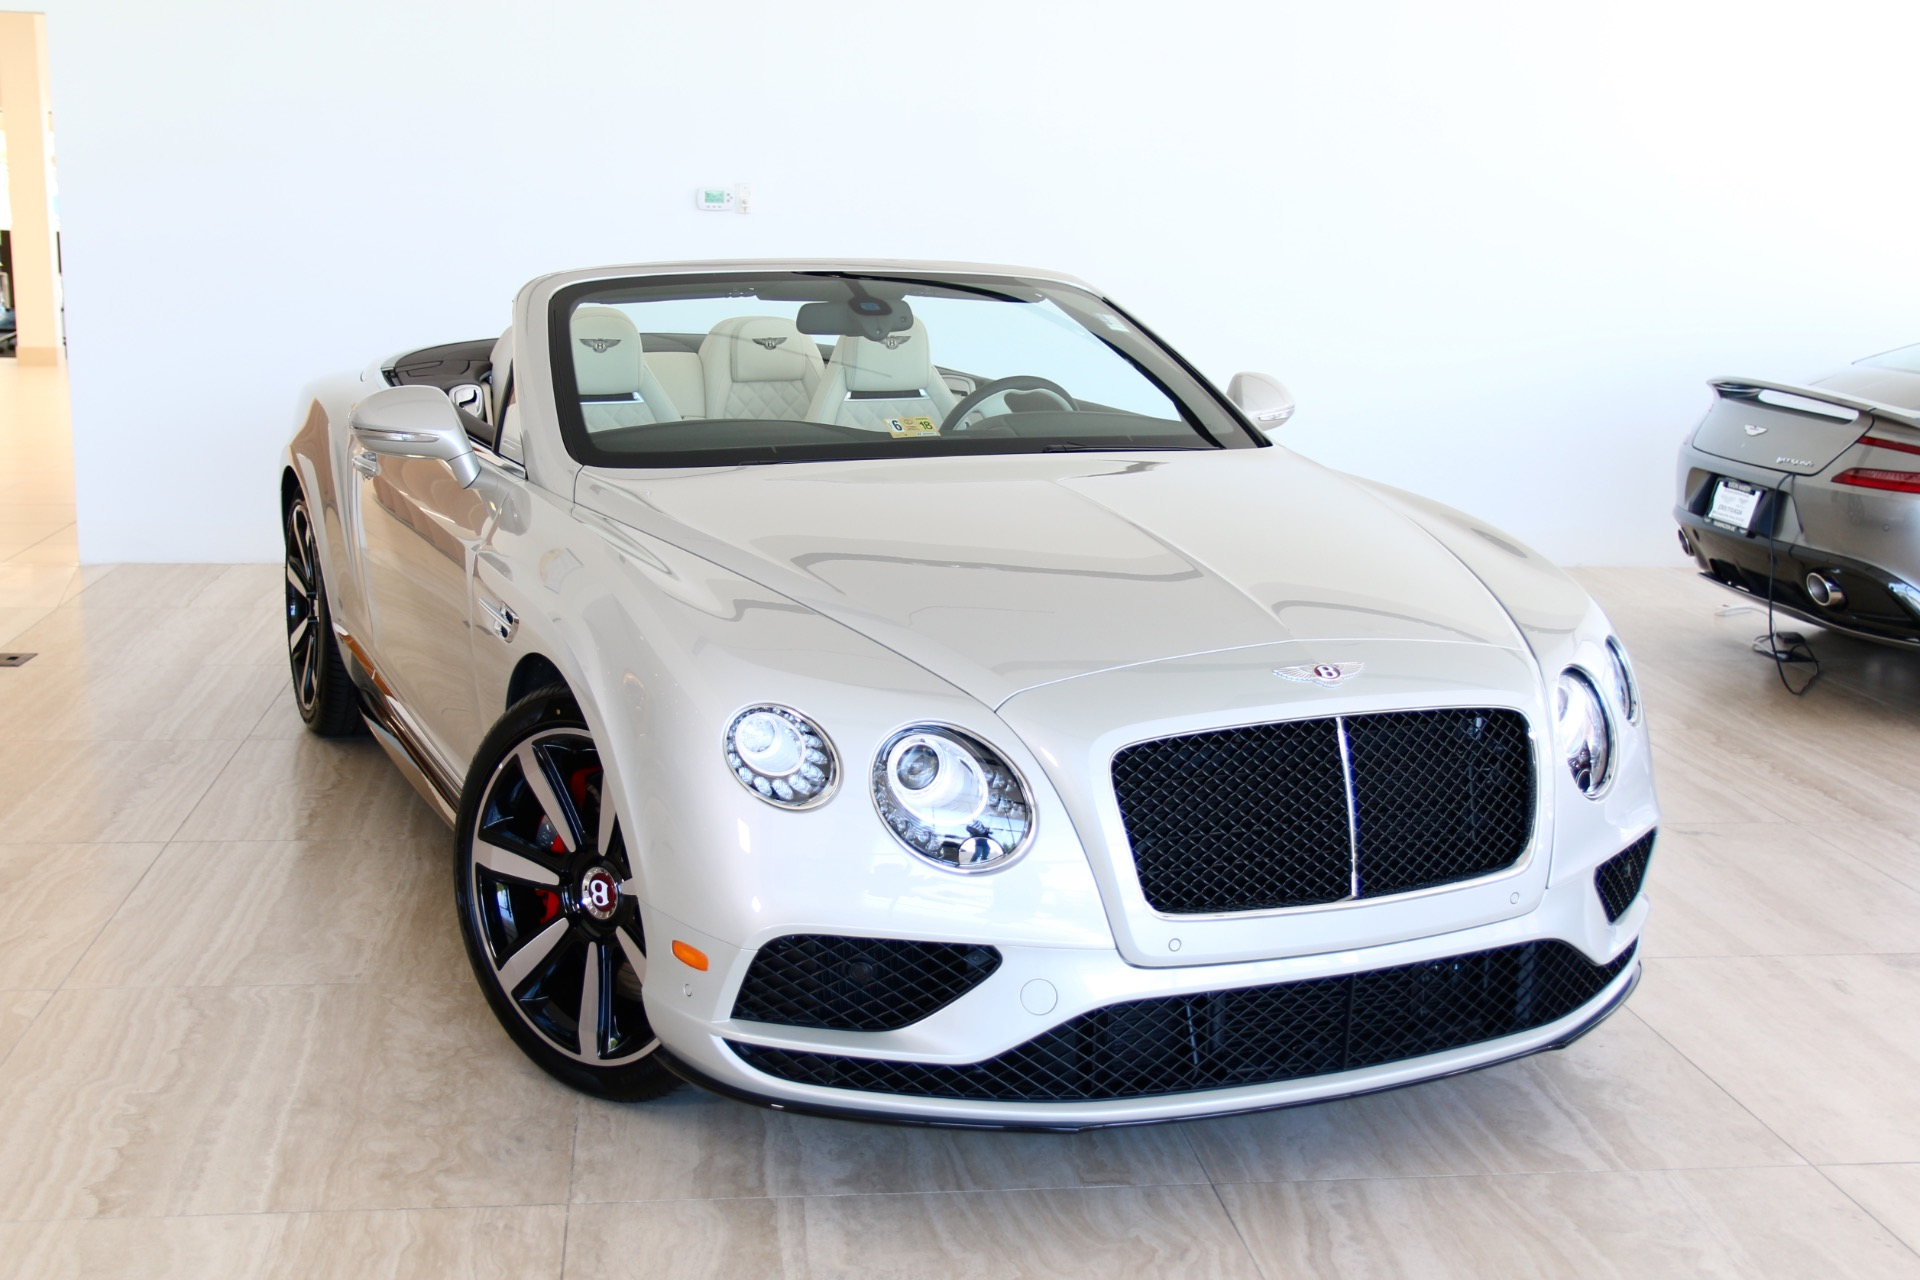 eu xxl en dardilly for in stock details gt continental convertible used sale bentley img car